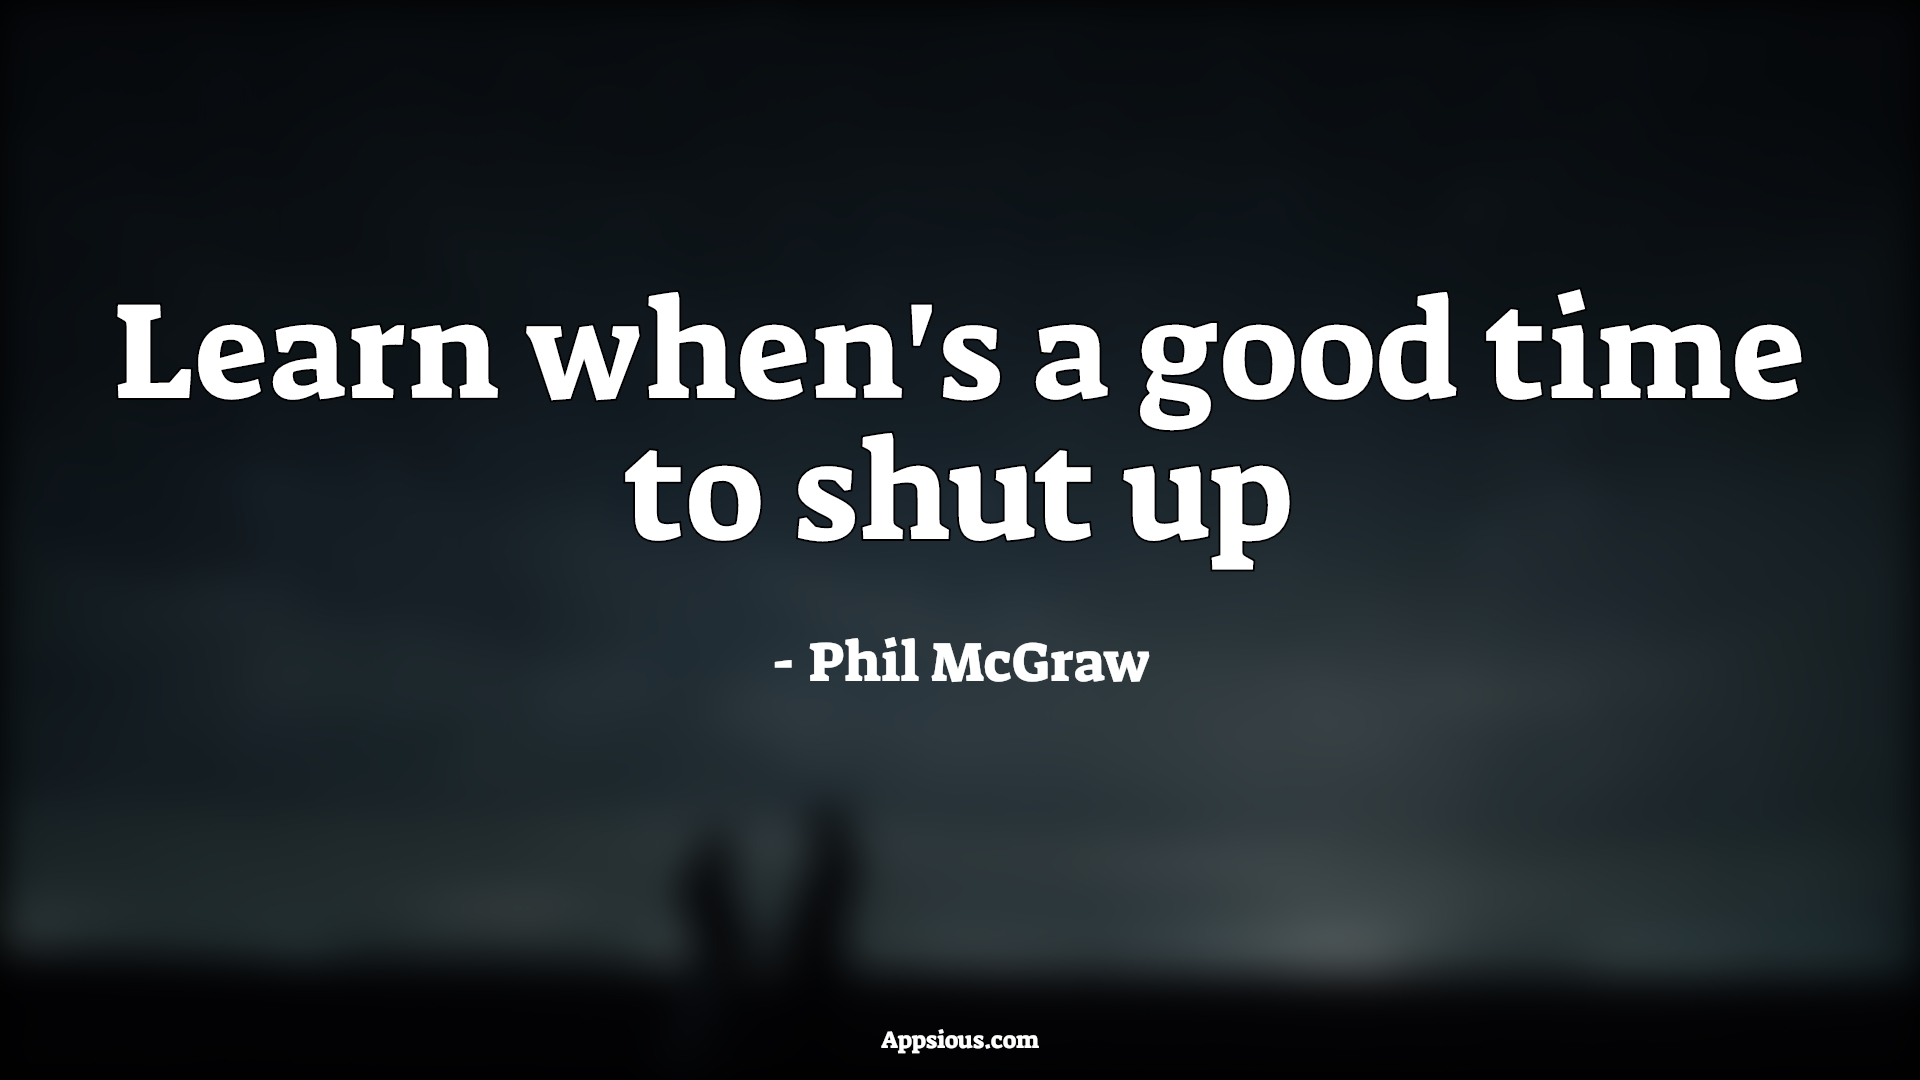 Learn when's a good time to shut up